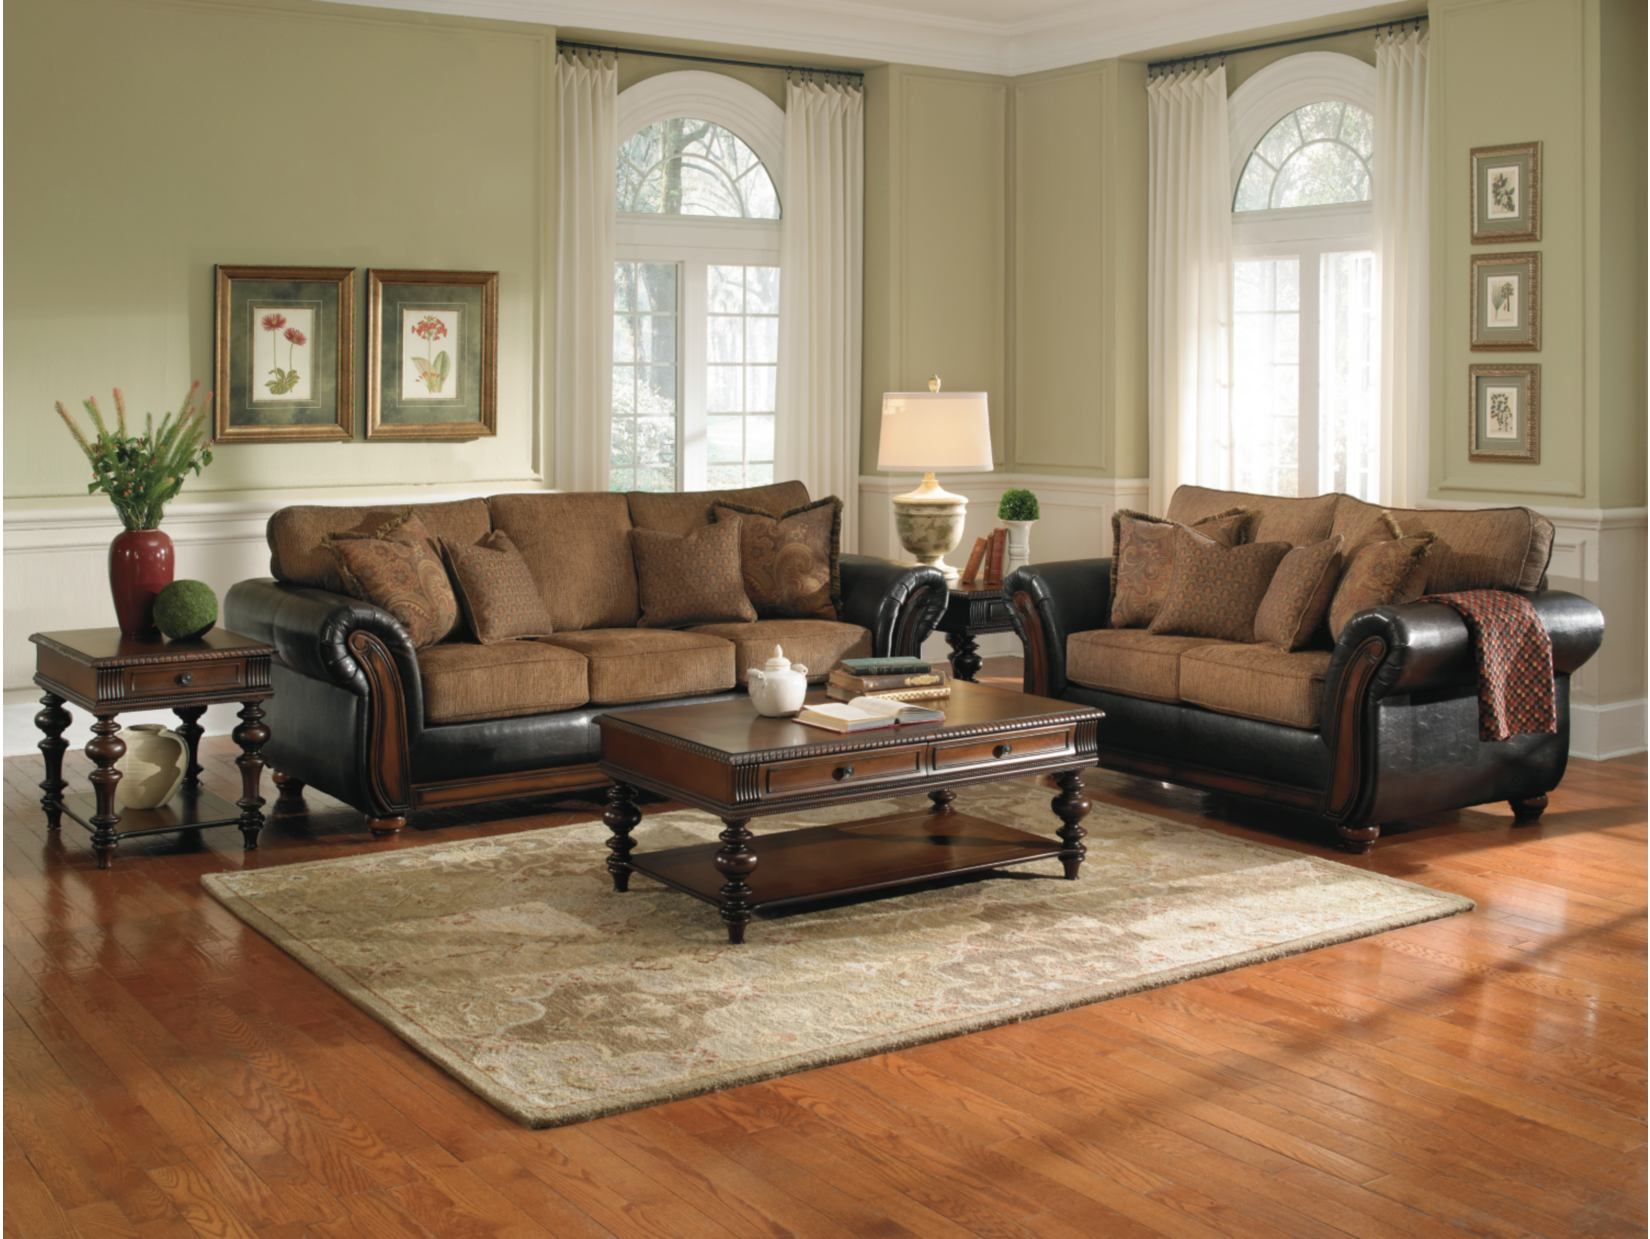 Groovy Regal Mocha Sofa And Loveseat Value City Furniture Pabps2019 Chair Design Images Pabps2019Com